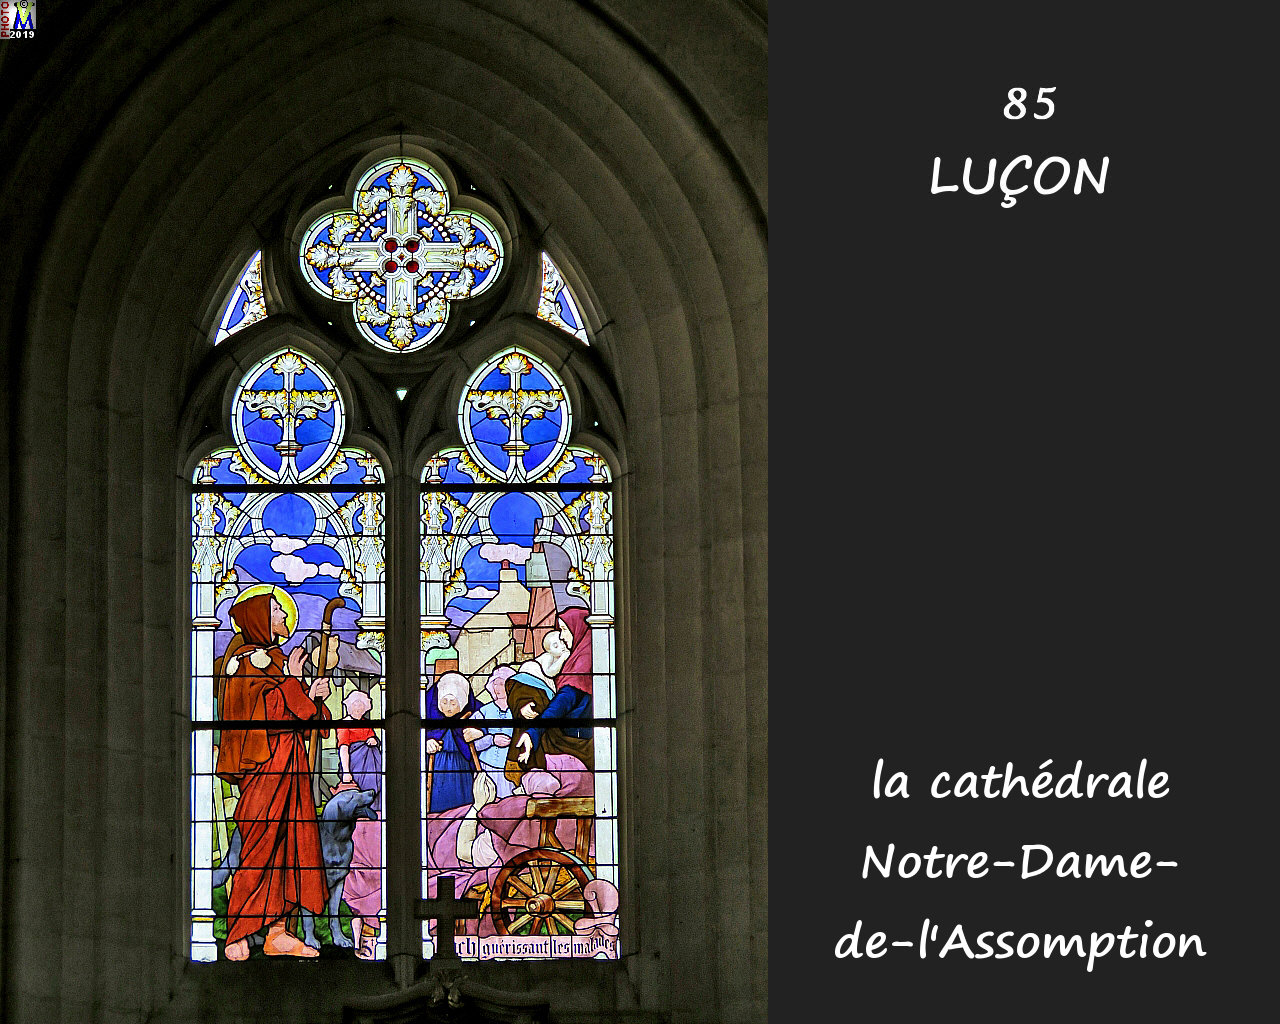 85LUCON_cathedrale_228.jpg